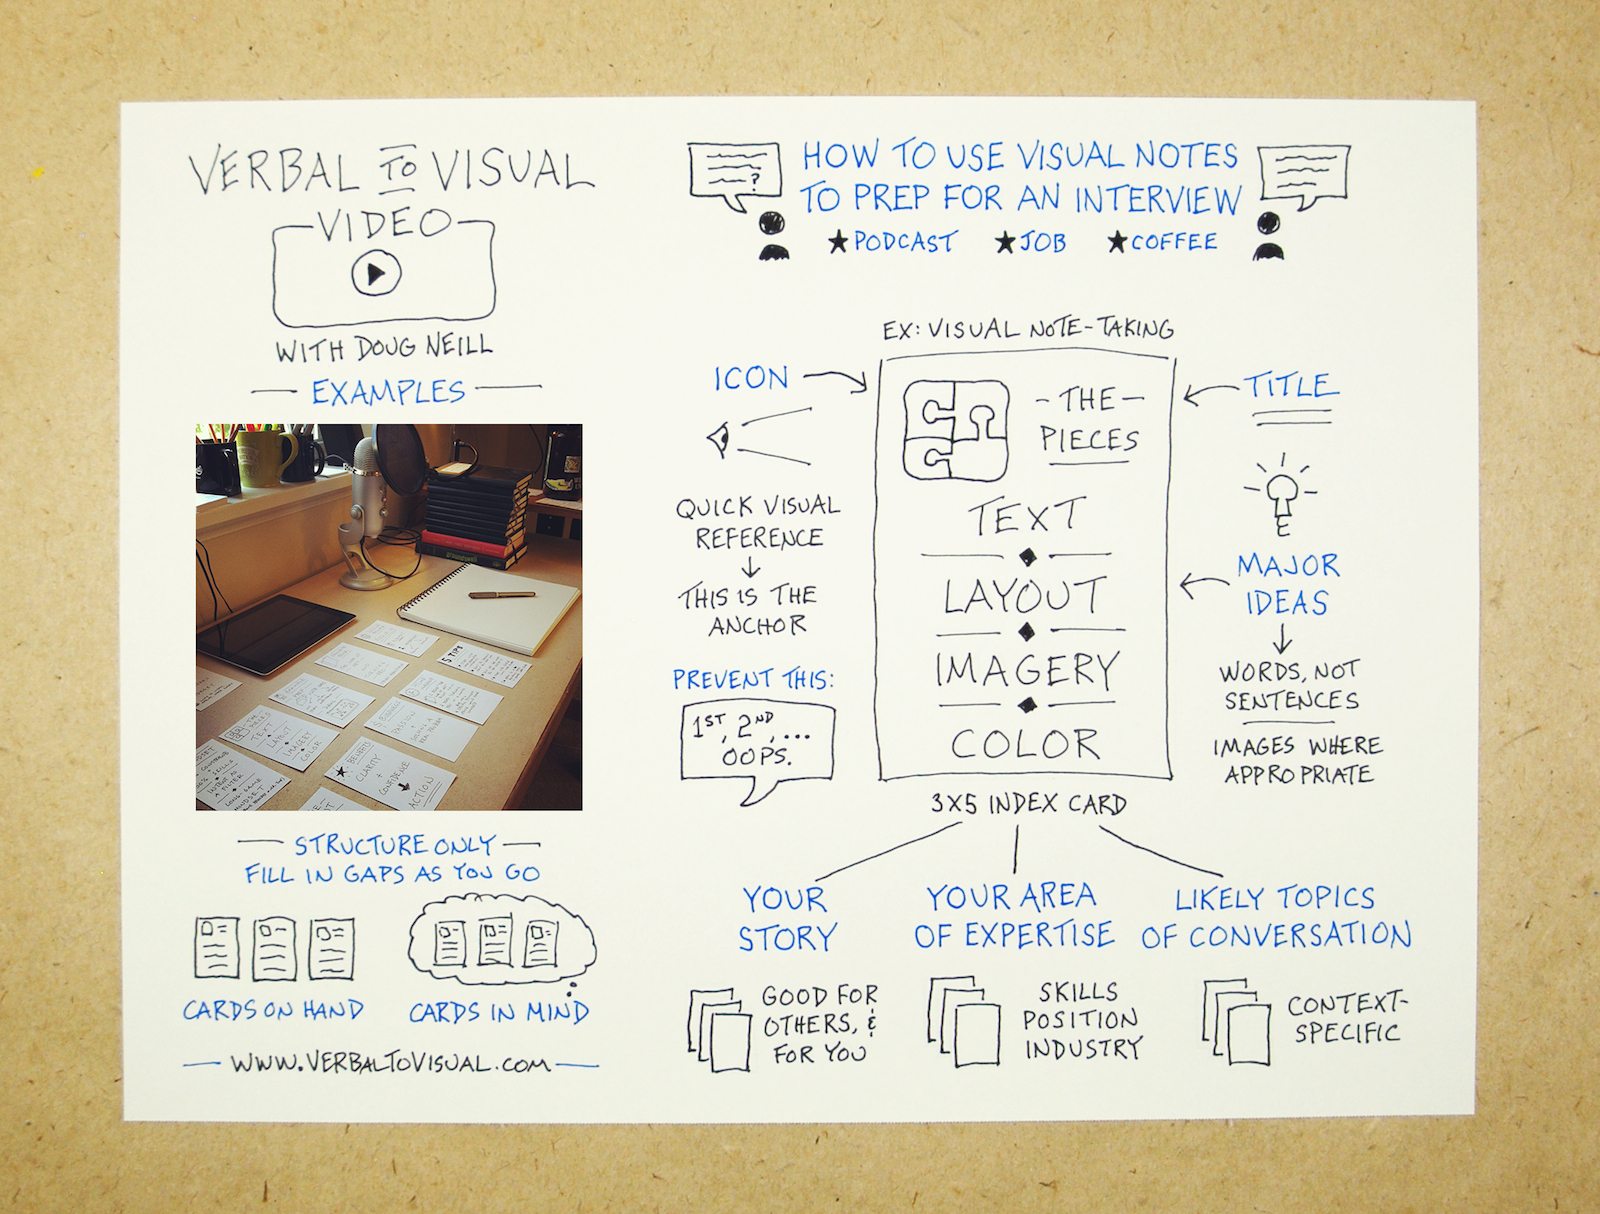 how to use visual notes to prepare for an interview verbal to visual how to use visual notes to prepare for an interview verbal to visual video